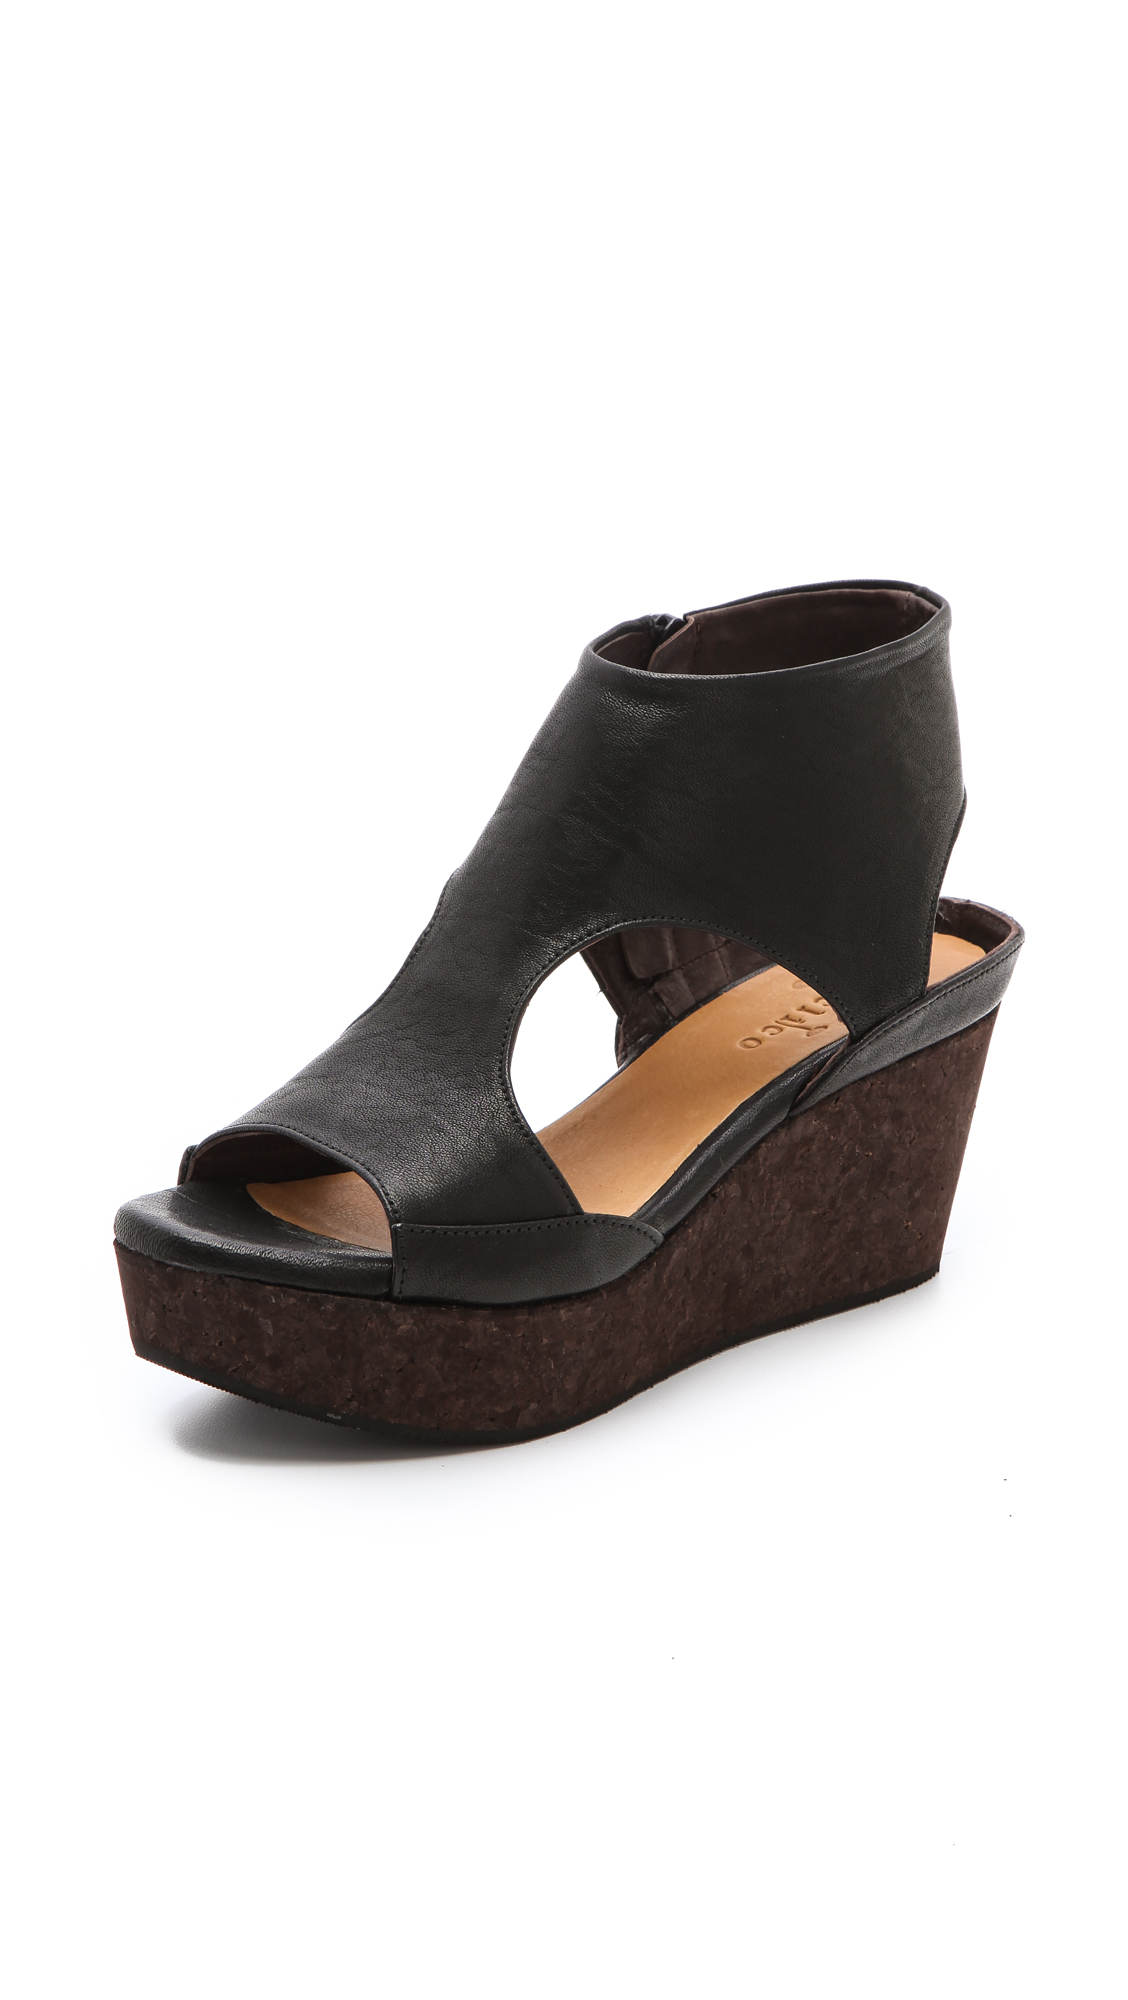 Lyst - Coclico Mosaic Cork Wedge Sandals in Black